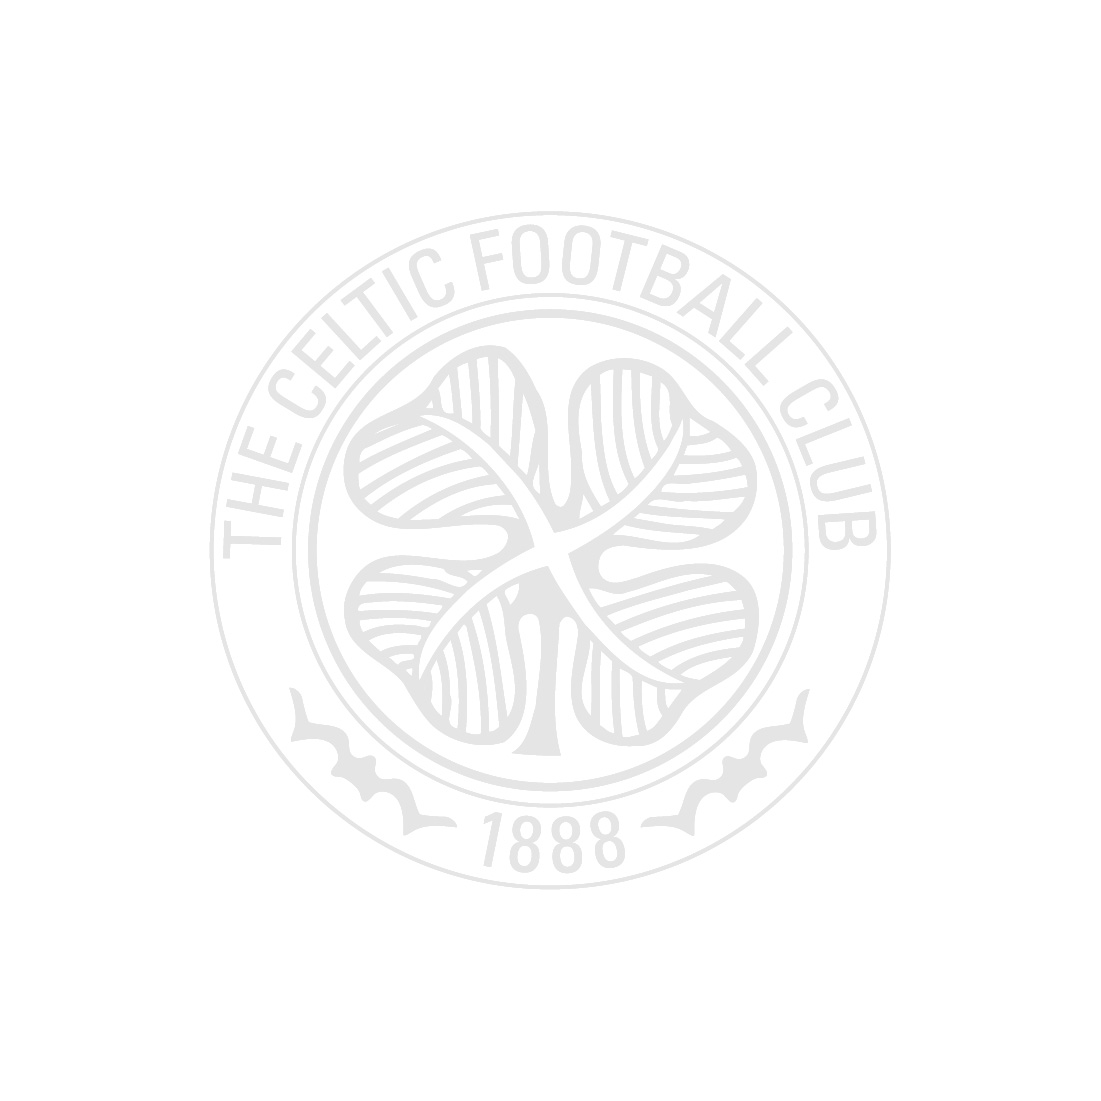 How The Lions Conquered Europe Celtic Book